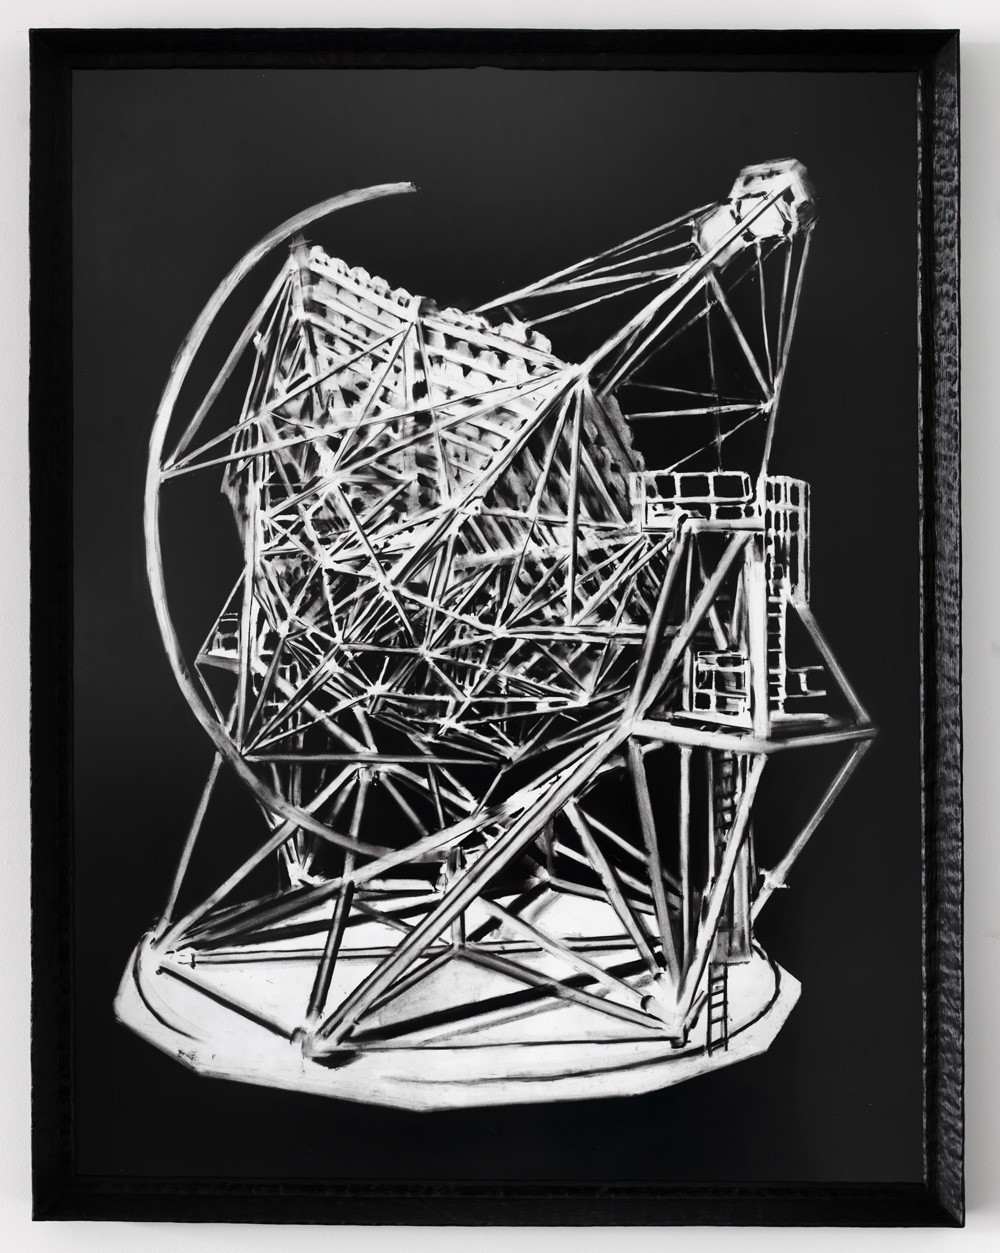 Douglas Stichbury  Desk ornament , 2015 Framed charcoal on paper 1100 x 835 mm [Private collection]  _______